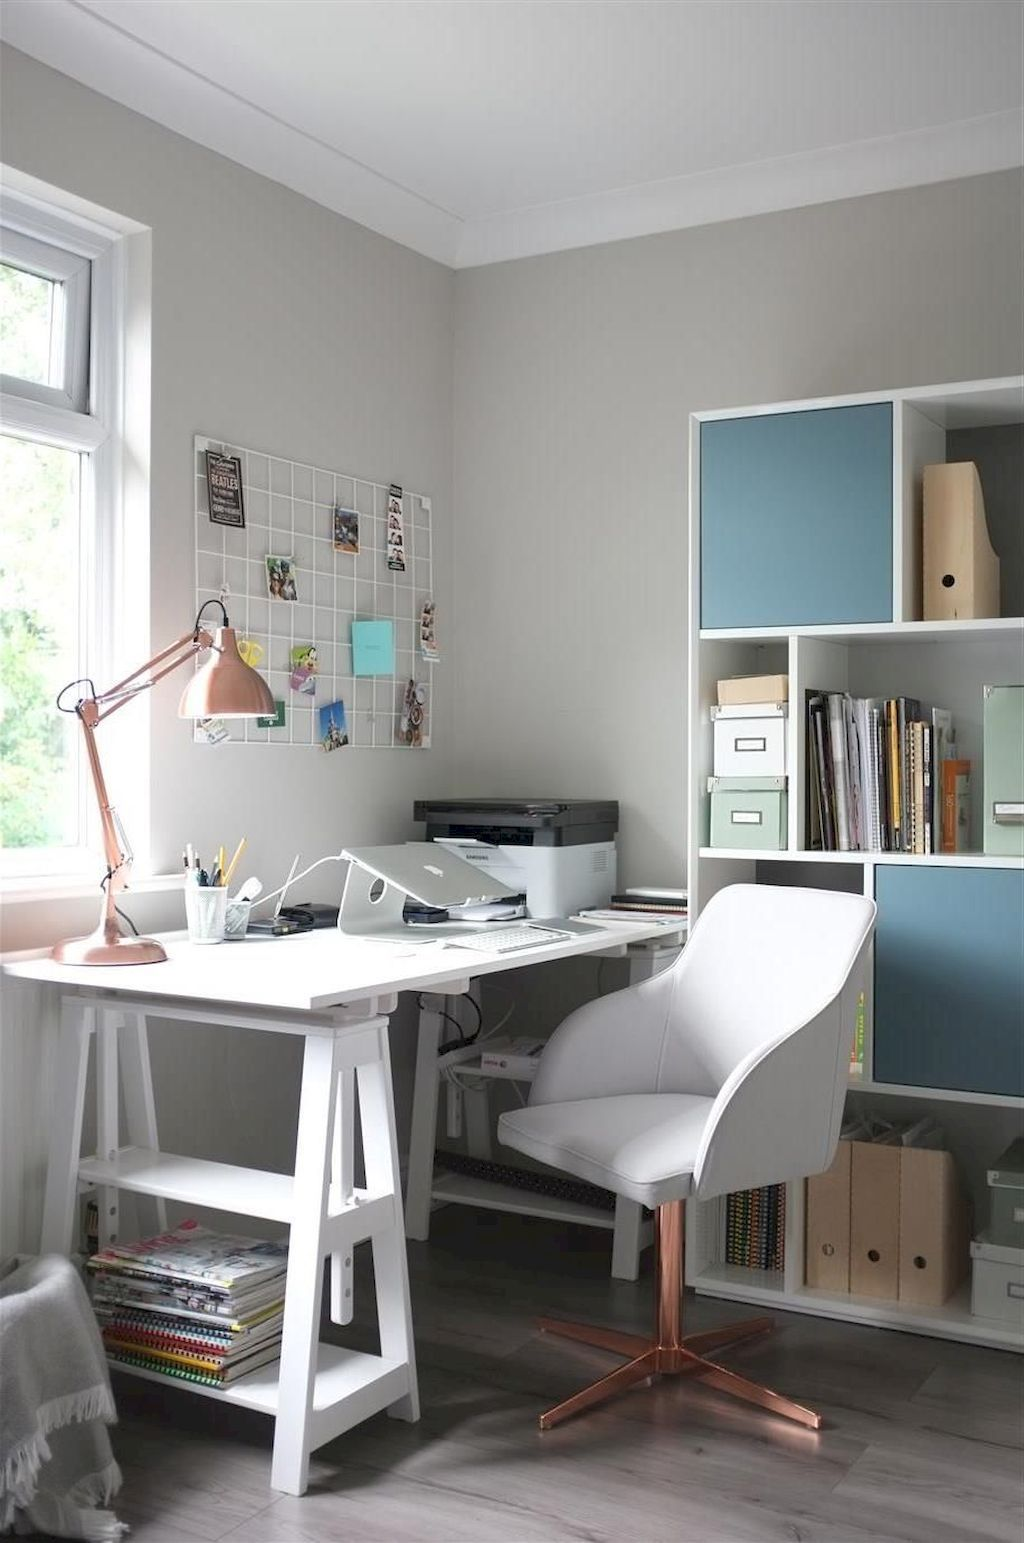 Adorning A Examine Room In Your Dwelling | Minimalist home ...